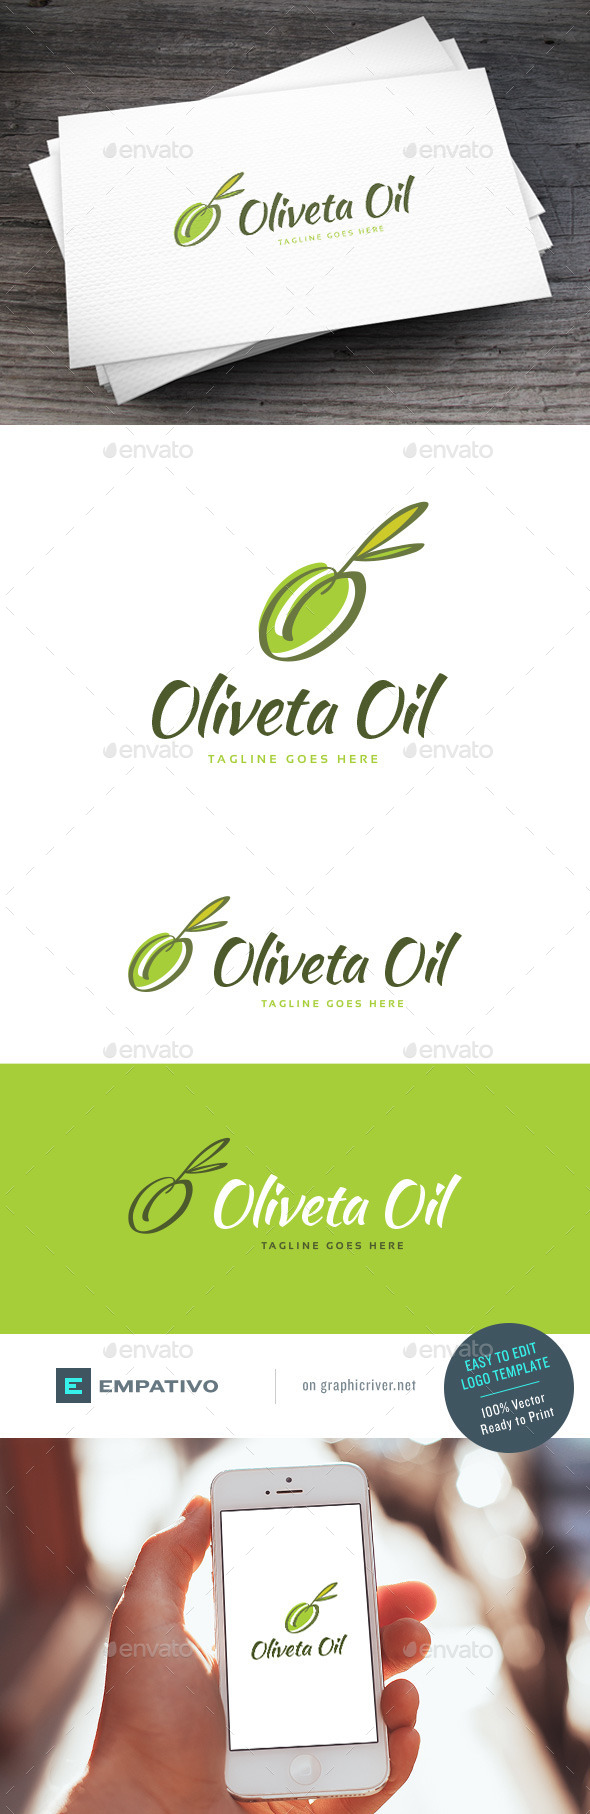 GraphicRiver Oliveta Oil Logo Template 11204452